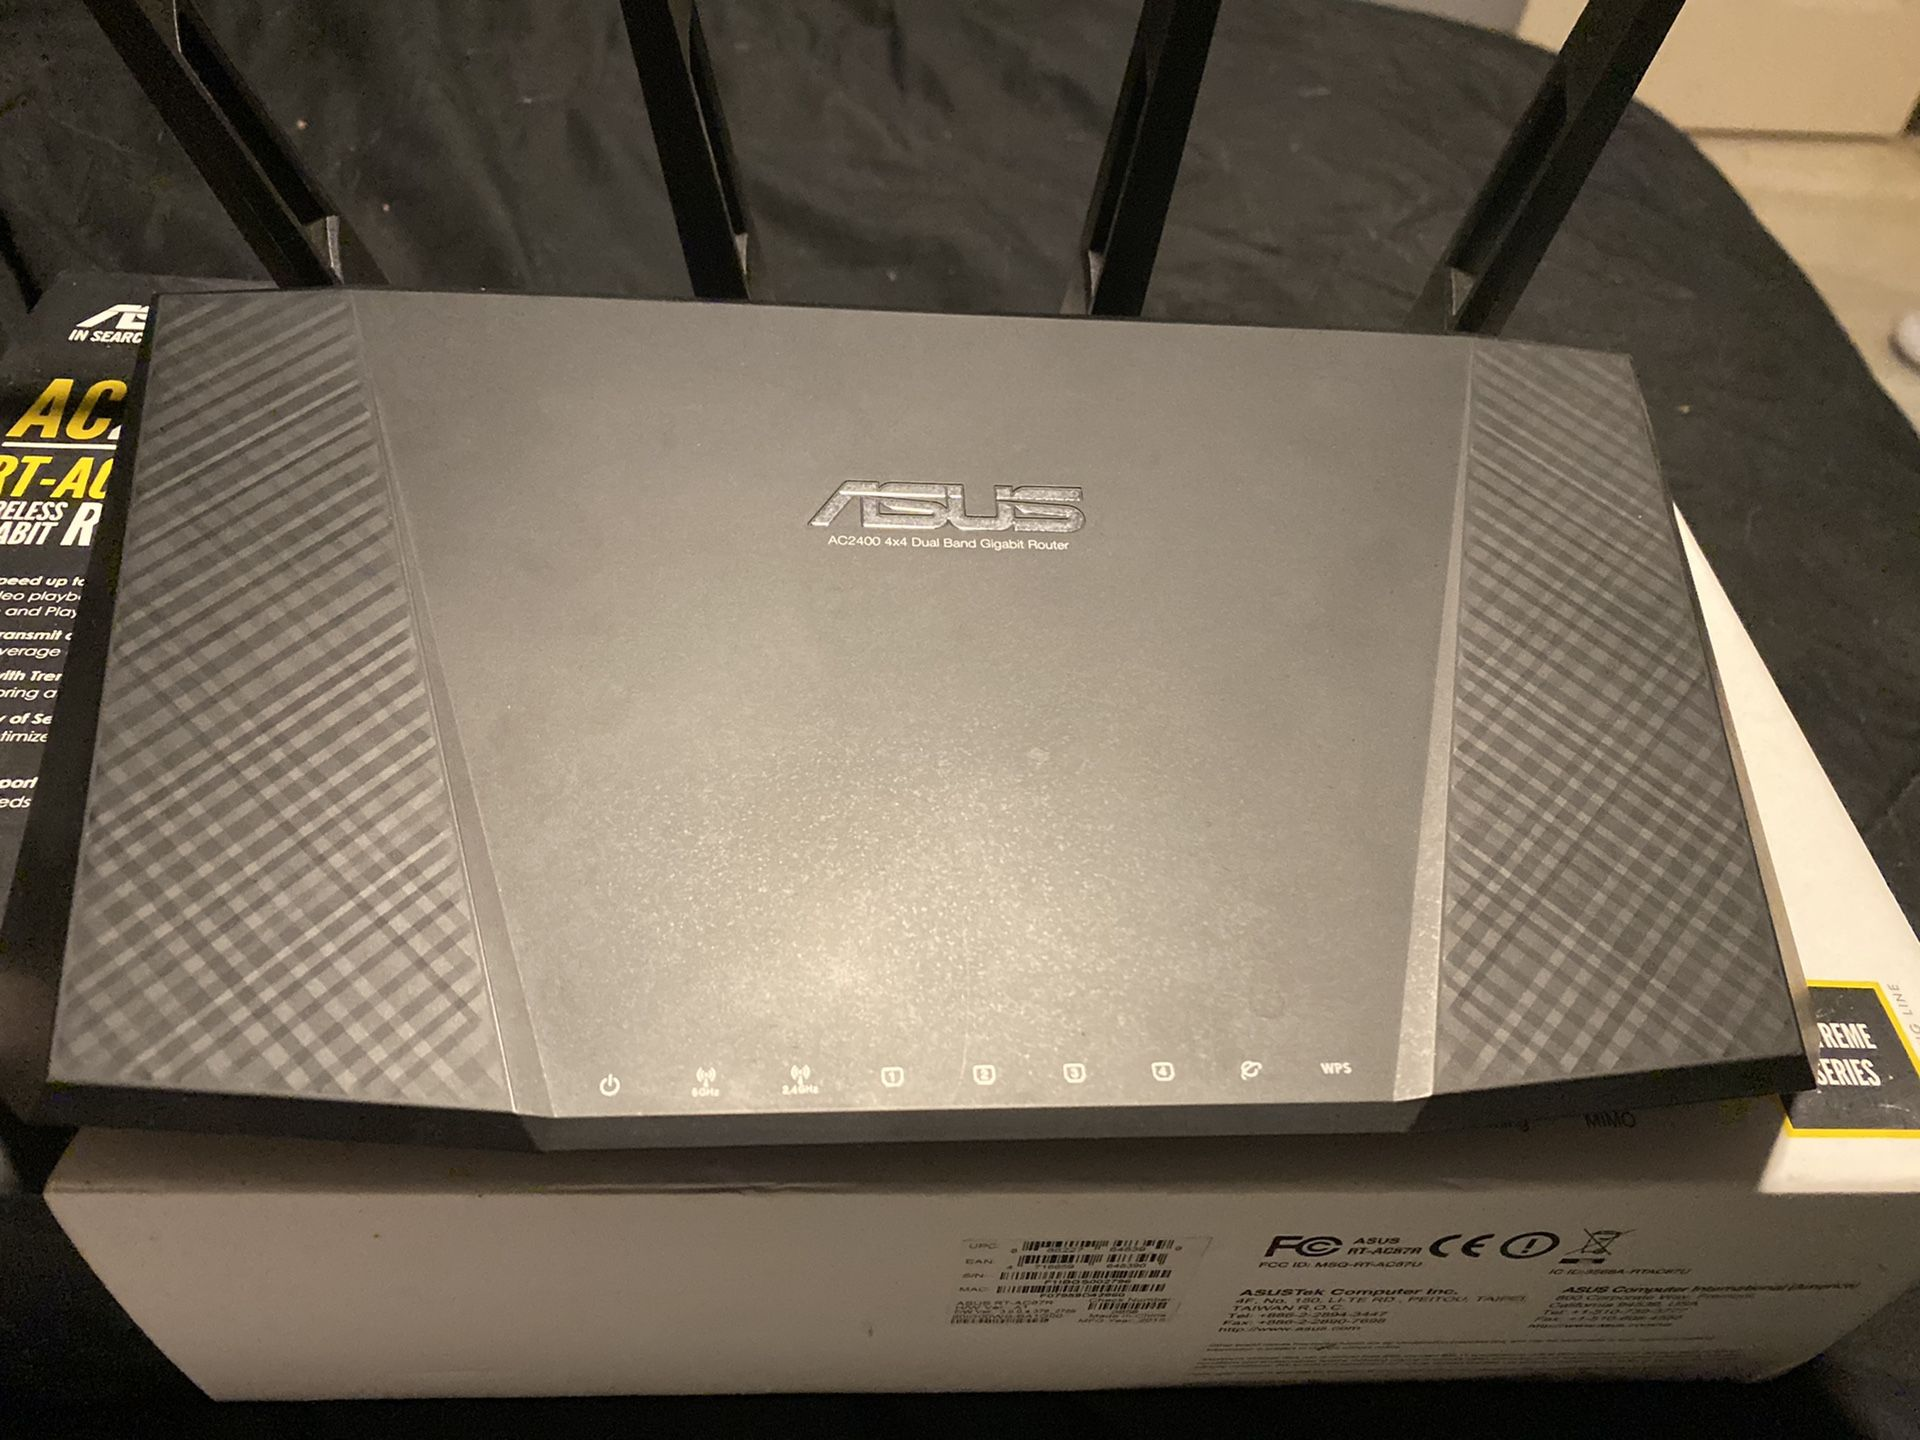 Asus Ac-2400 router